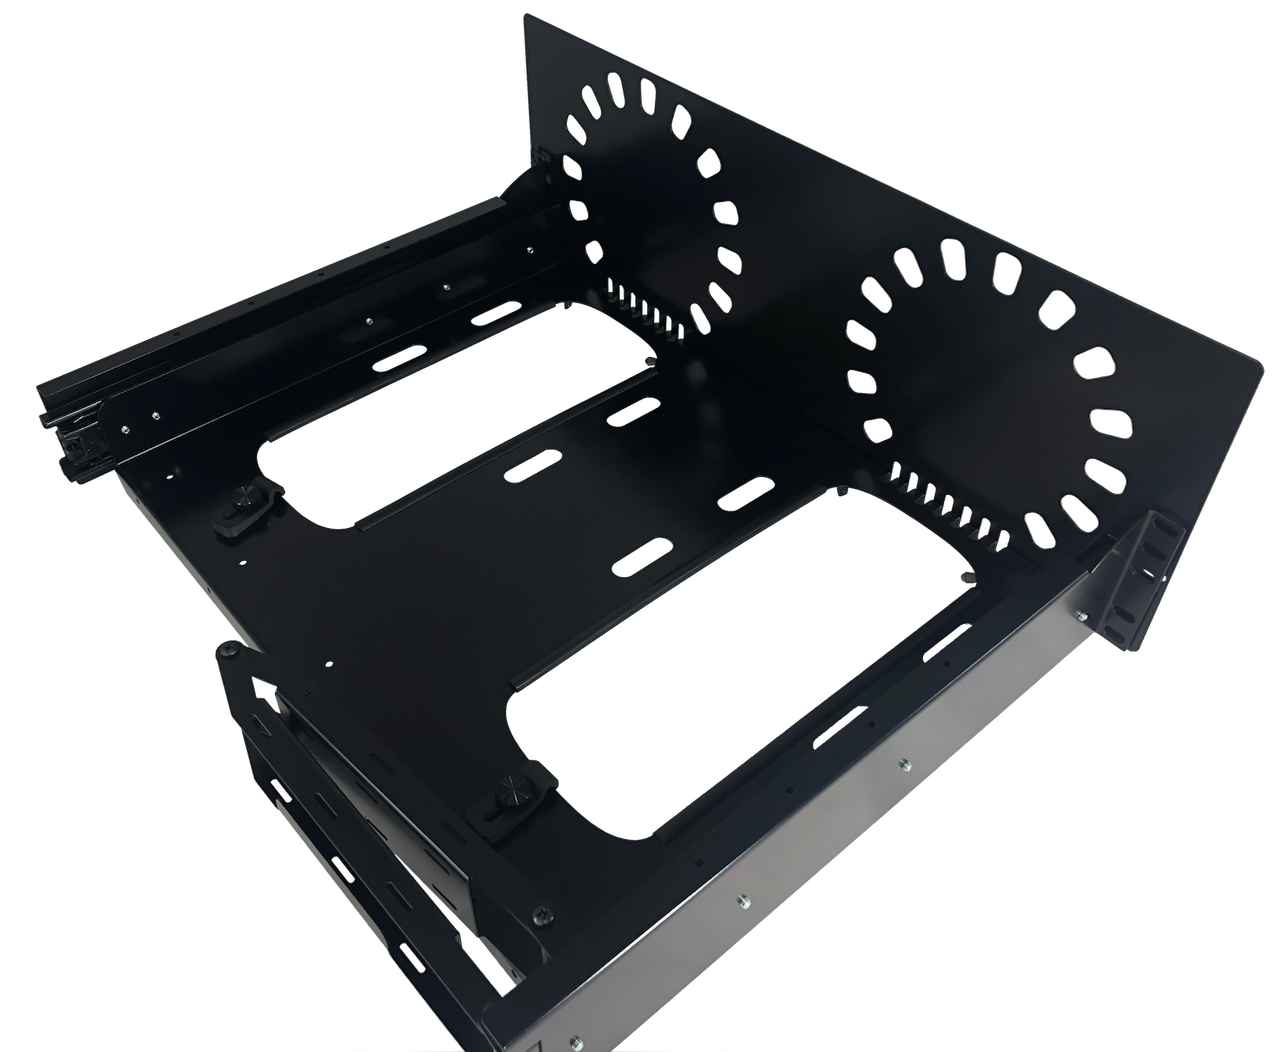 Rear View Mounted Baffle Plate on face of MPR-2X